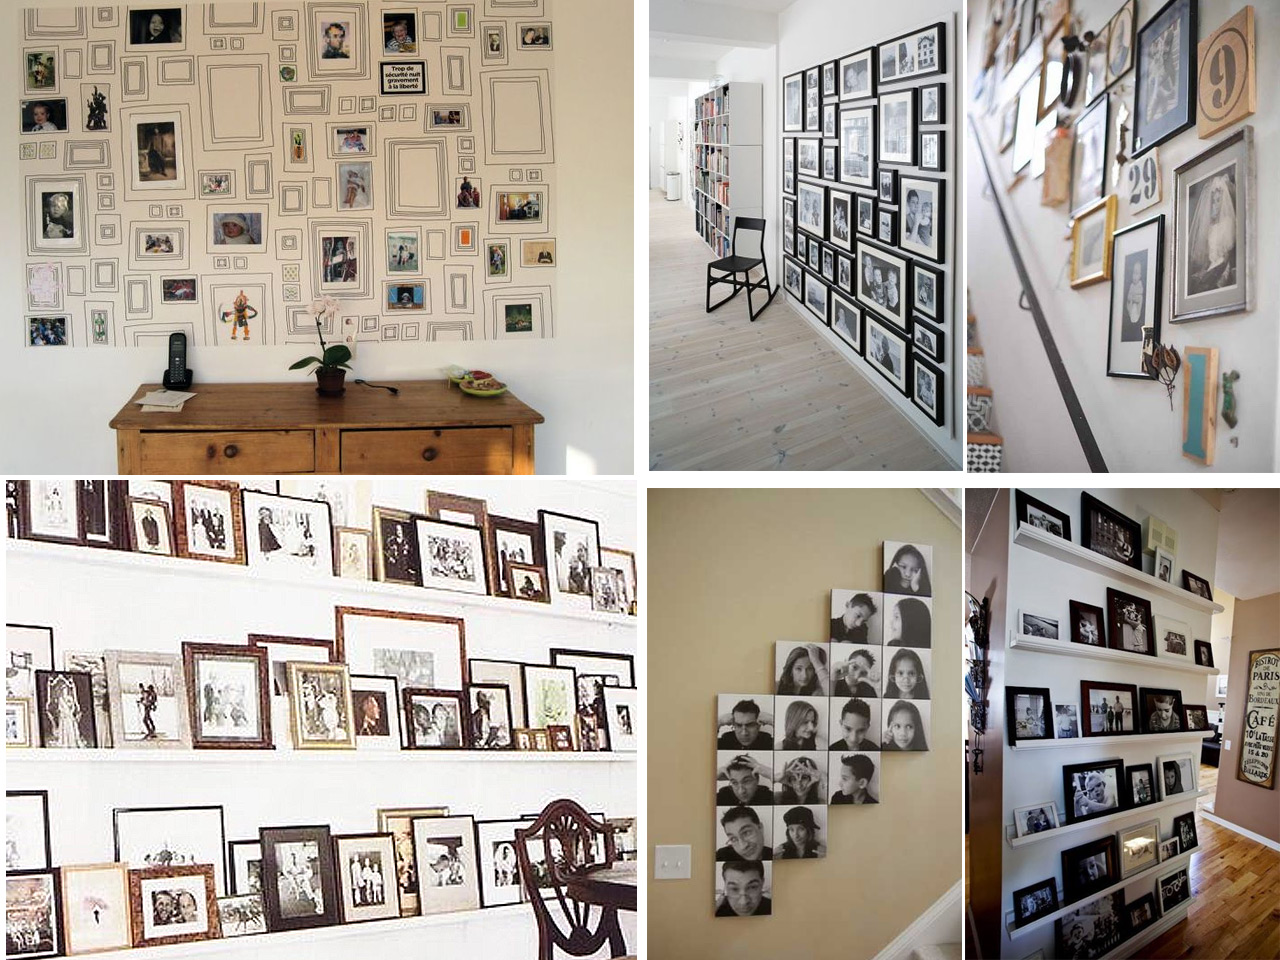 60 Brillantes Ideas Para Decorar Con Fotos Familiares ~ Como Decorar La Pared De Una Escalera